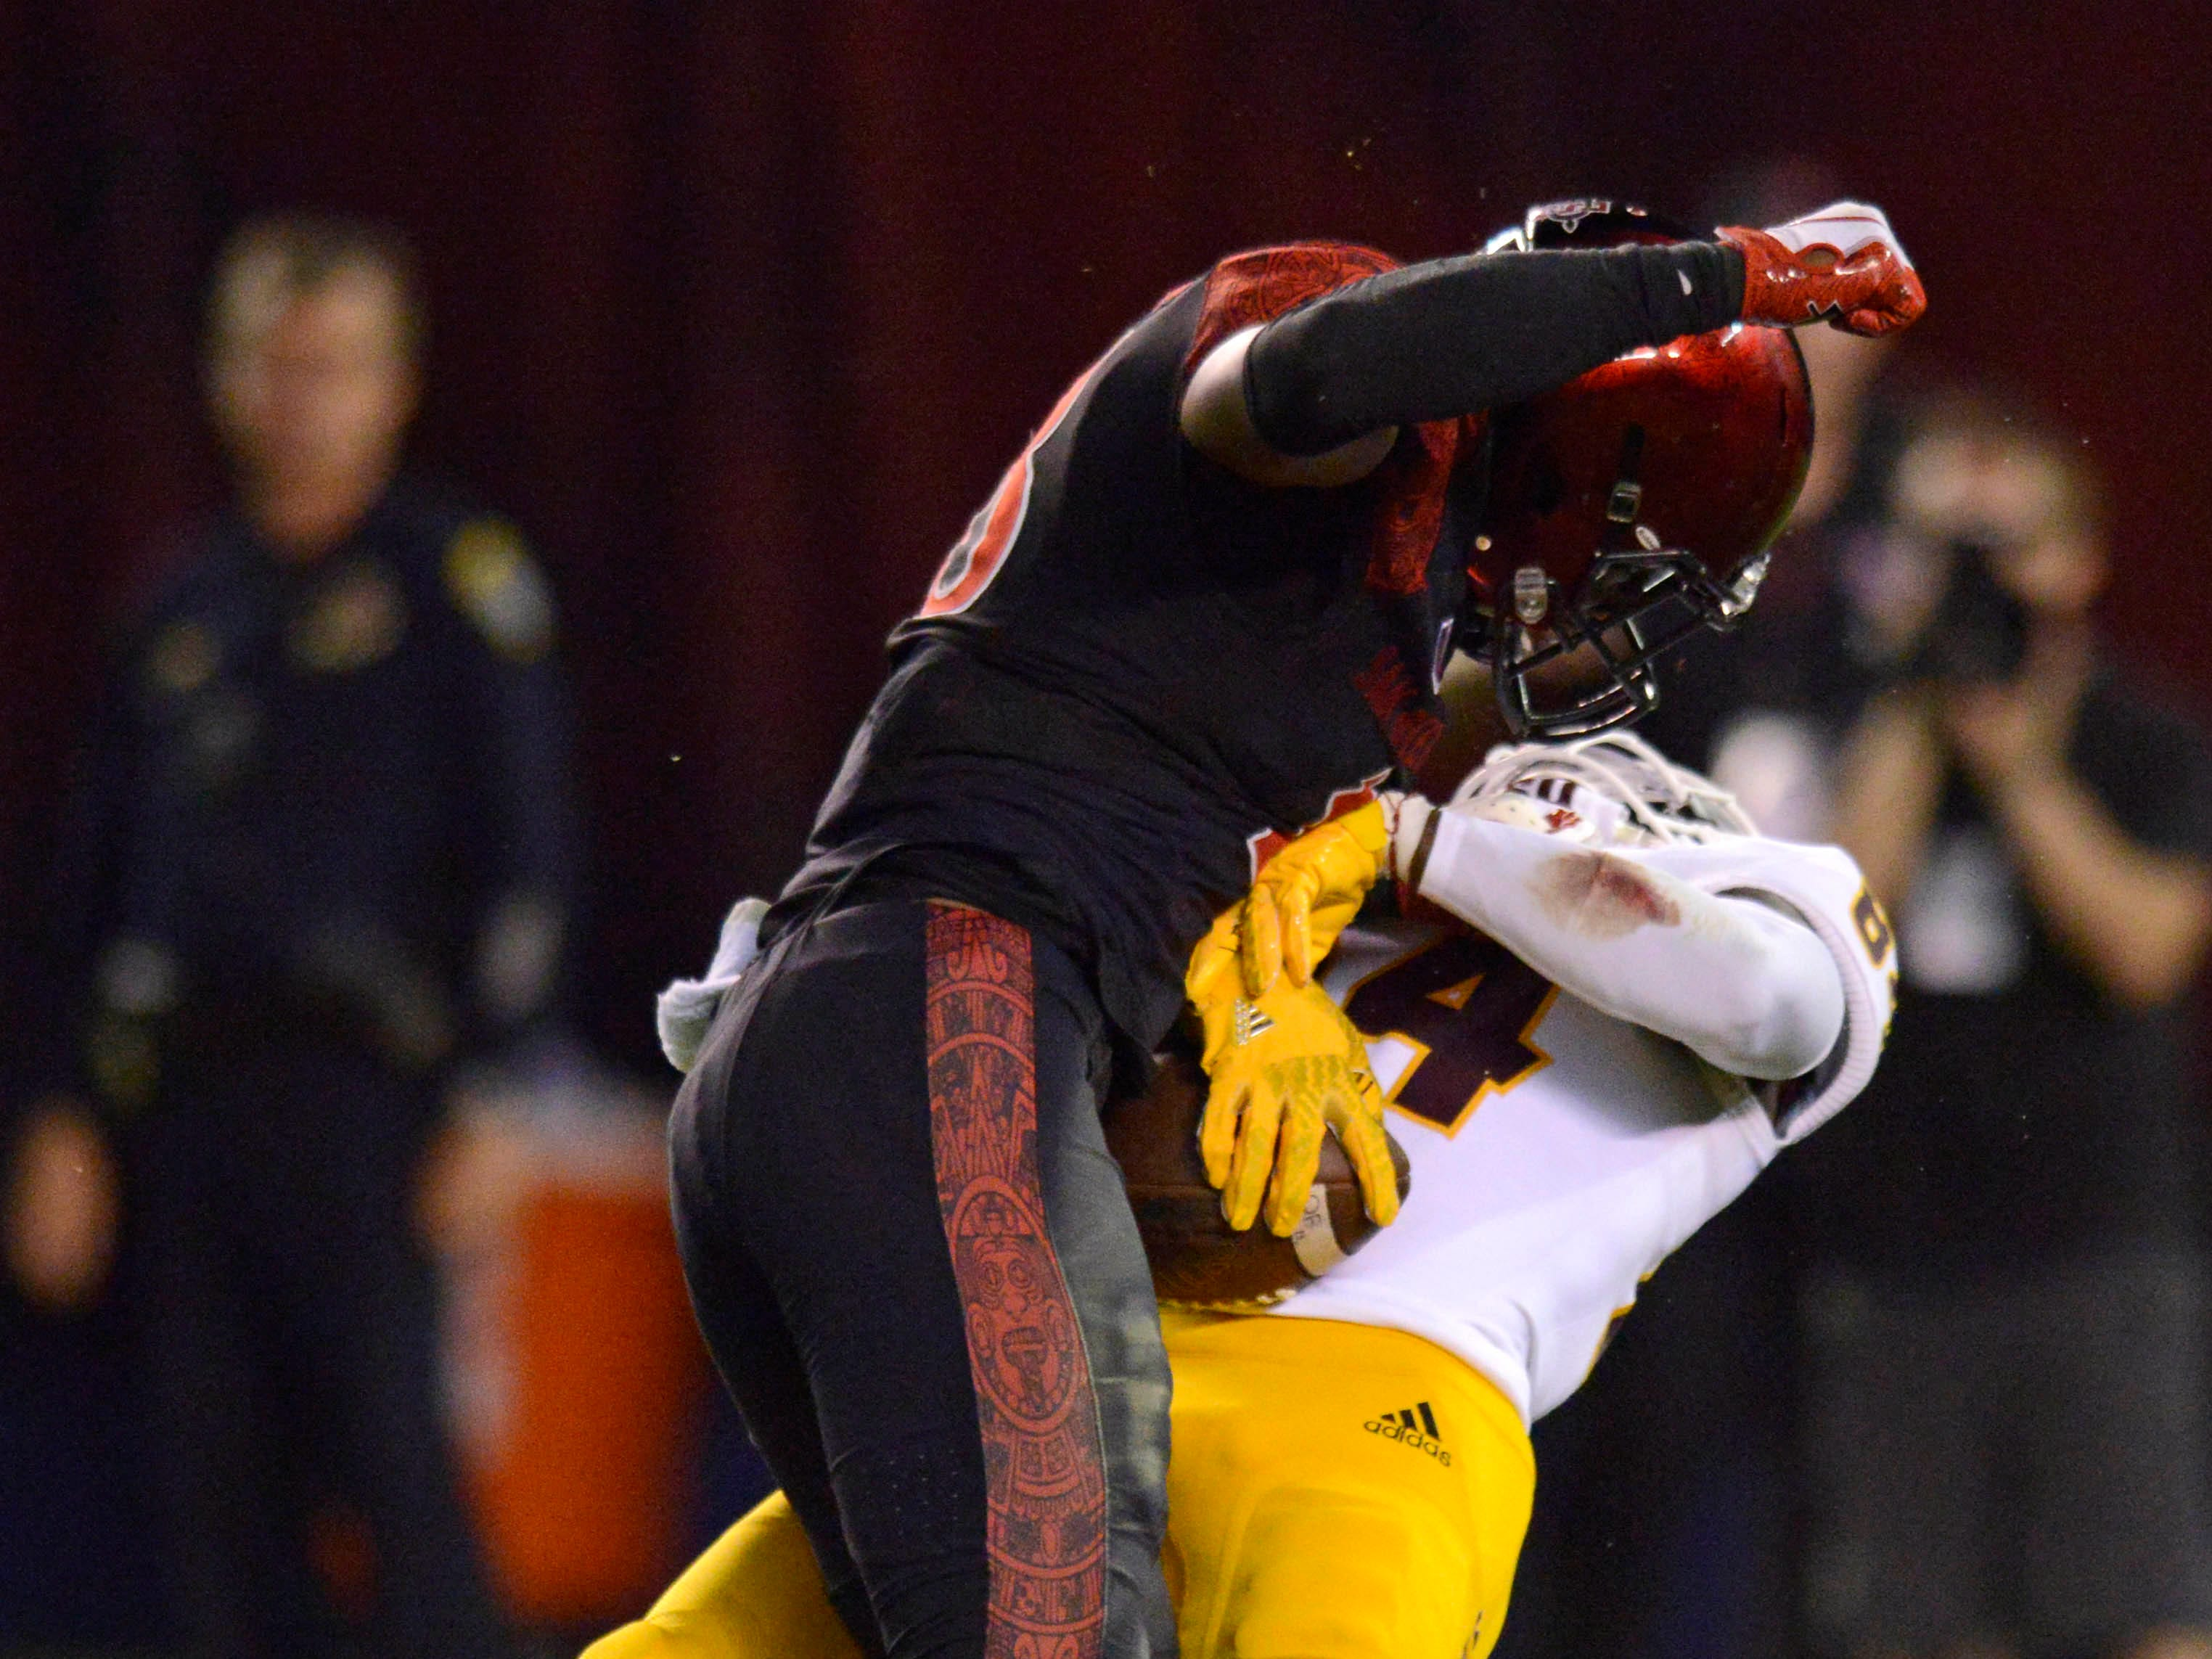 San Diego State Aztecs safety Trenton Thompson (18) hits ASU receiver Frank Darby late in the fourth quarter, a play that was originally ruled a catch until a review overturned the call.